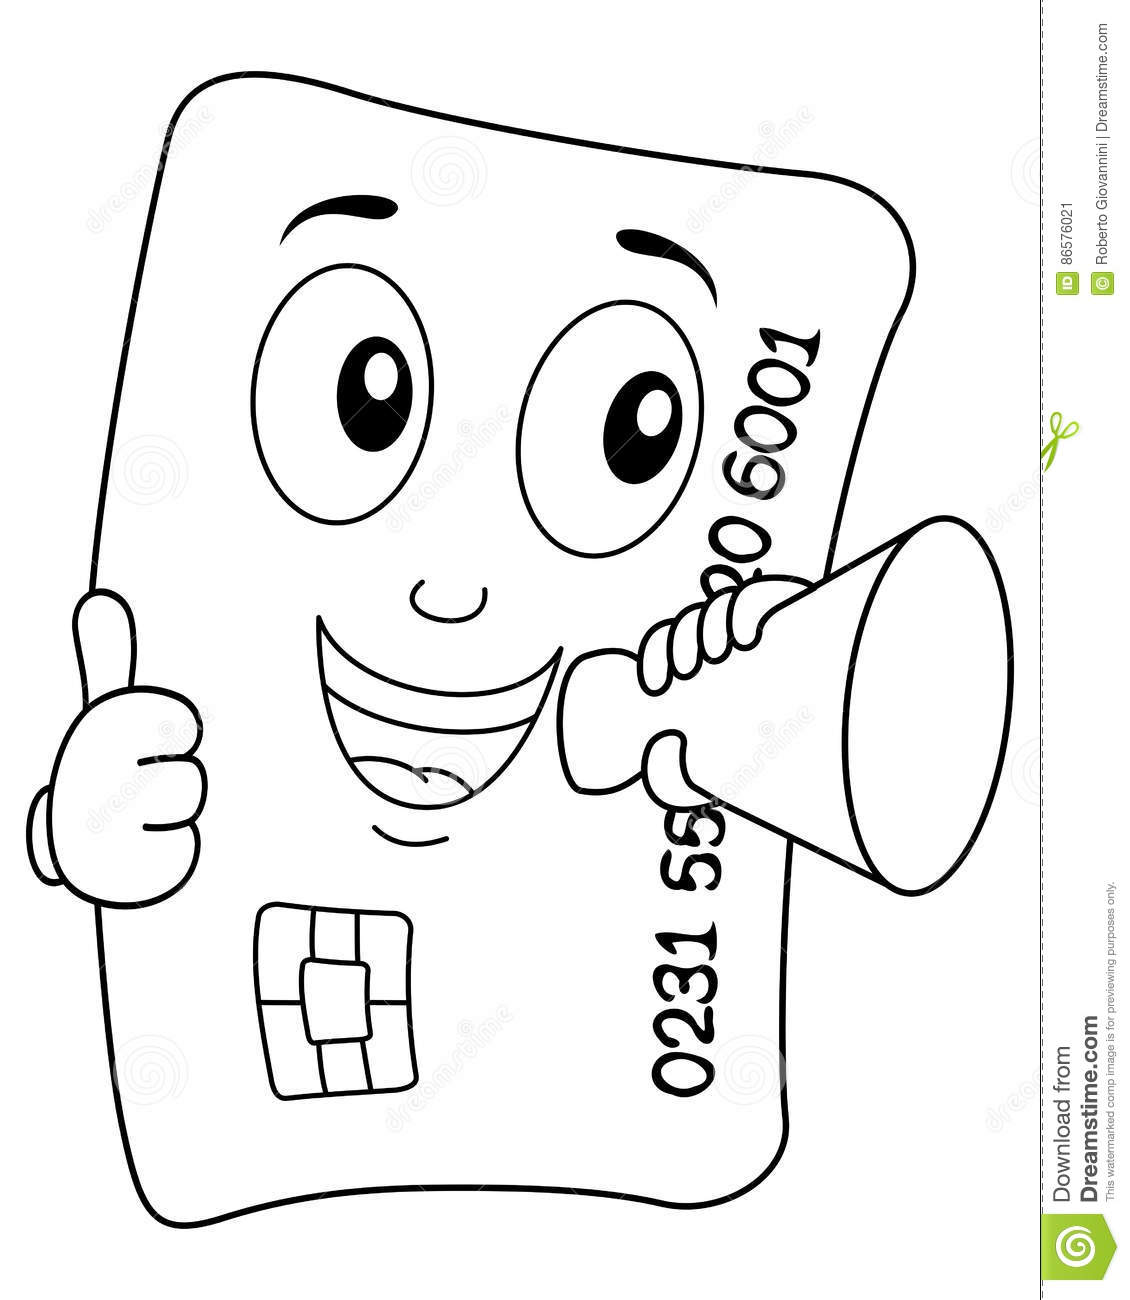 credit card coloring pages 1000 images about for kids on pinterest credit cards coloring card pages credit